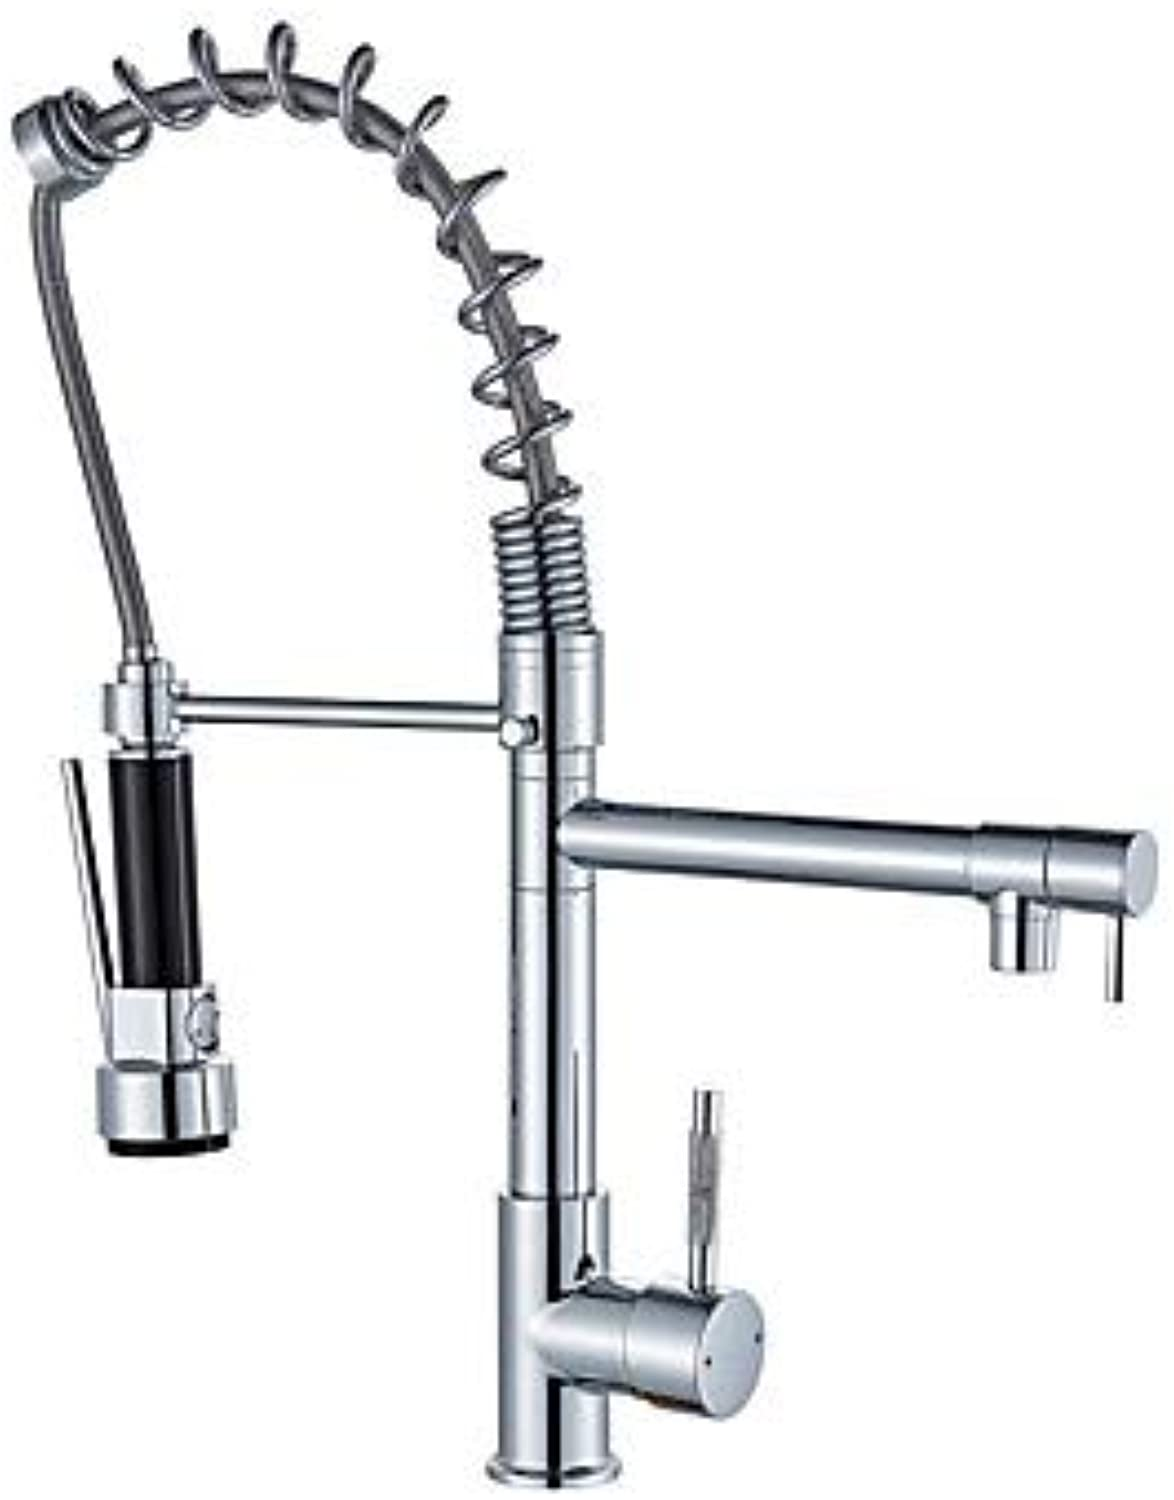 Kitchen Faucet - Single Handle One Hole Chrome Pull-Out, -Pull-Down Deck Mounted Contemporary Kitchen Taps